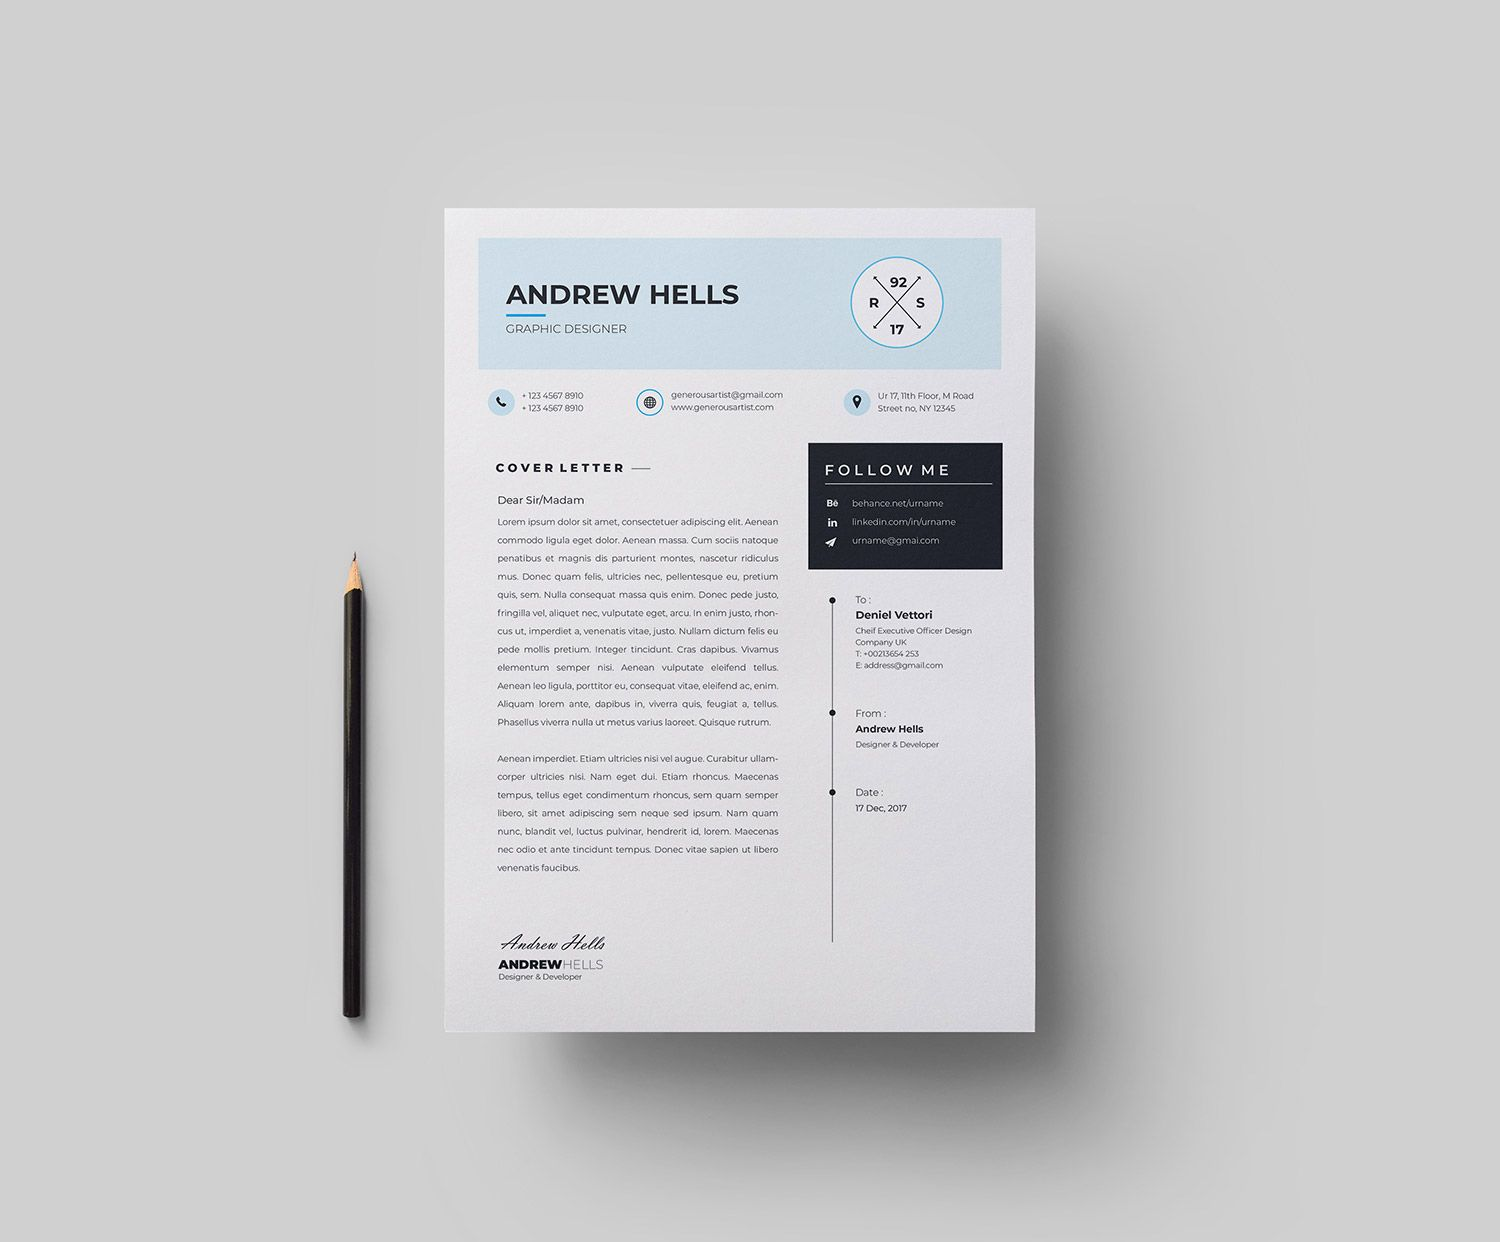 A4 Minimalist Resume Template - Minimalist resume template, Minimalist resume, Resume template, Resume design template, Templates, Resume - A4 Minimalist Resume Template  The perfect way to make the best impression  Strong typographic structure and very easy to use and customize  The resume template